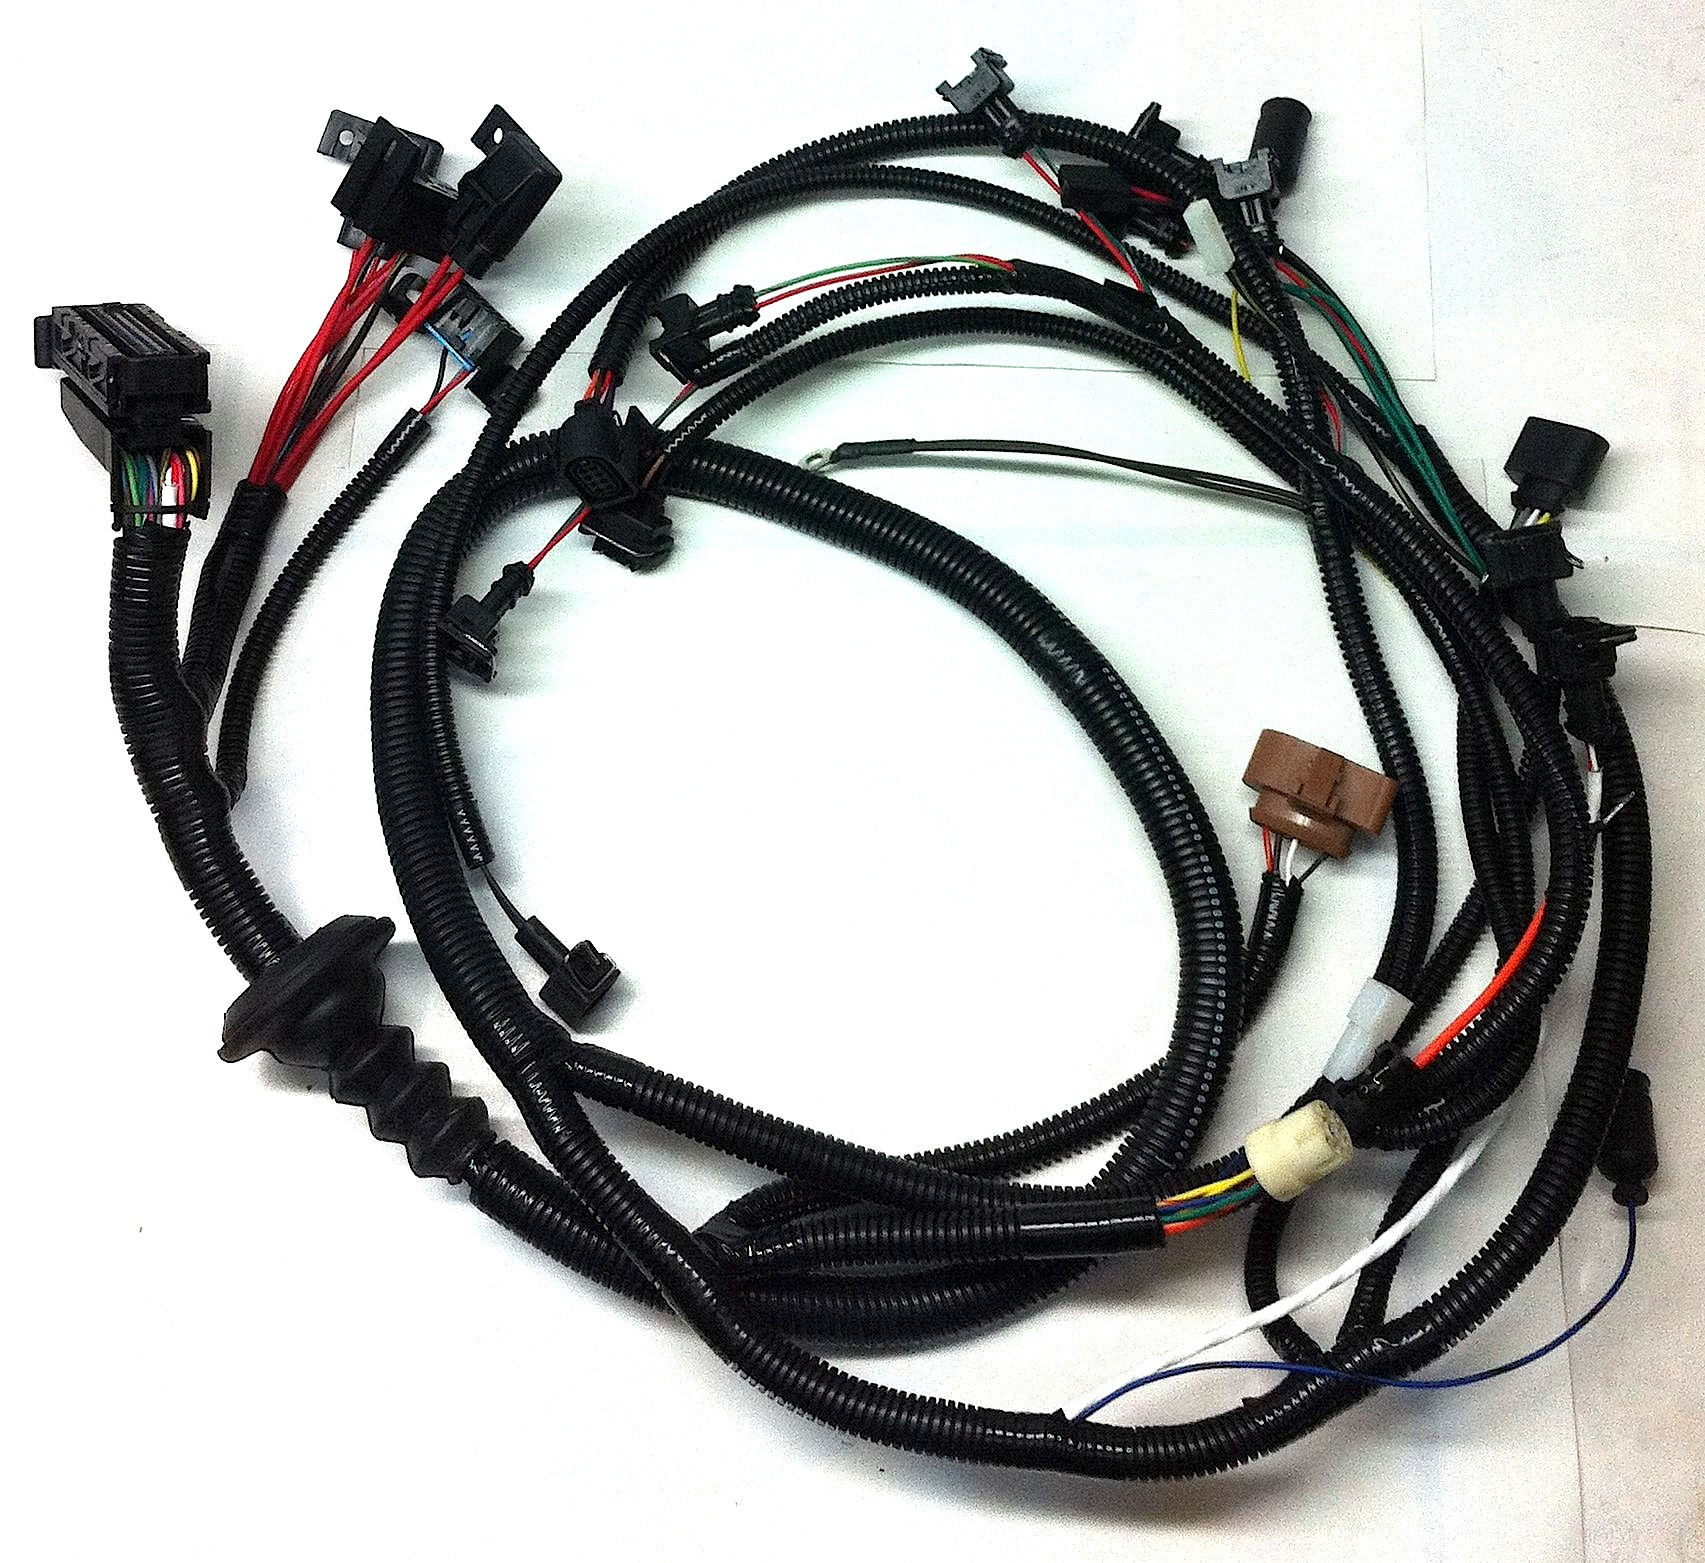 Main Wiring Harness Diagram Online 1984 Chevy Van Conversion Data S10 2lr Tiico Foreign